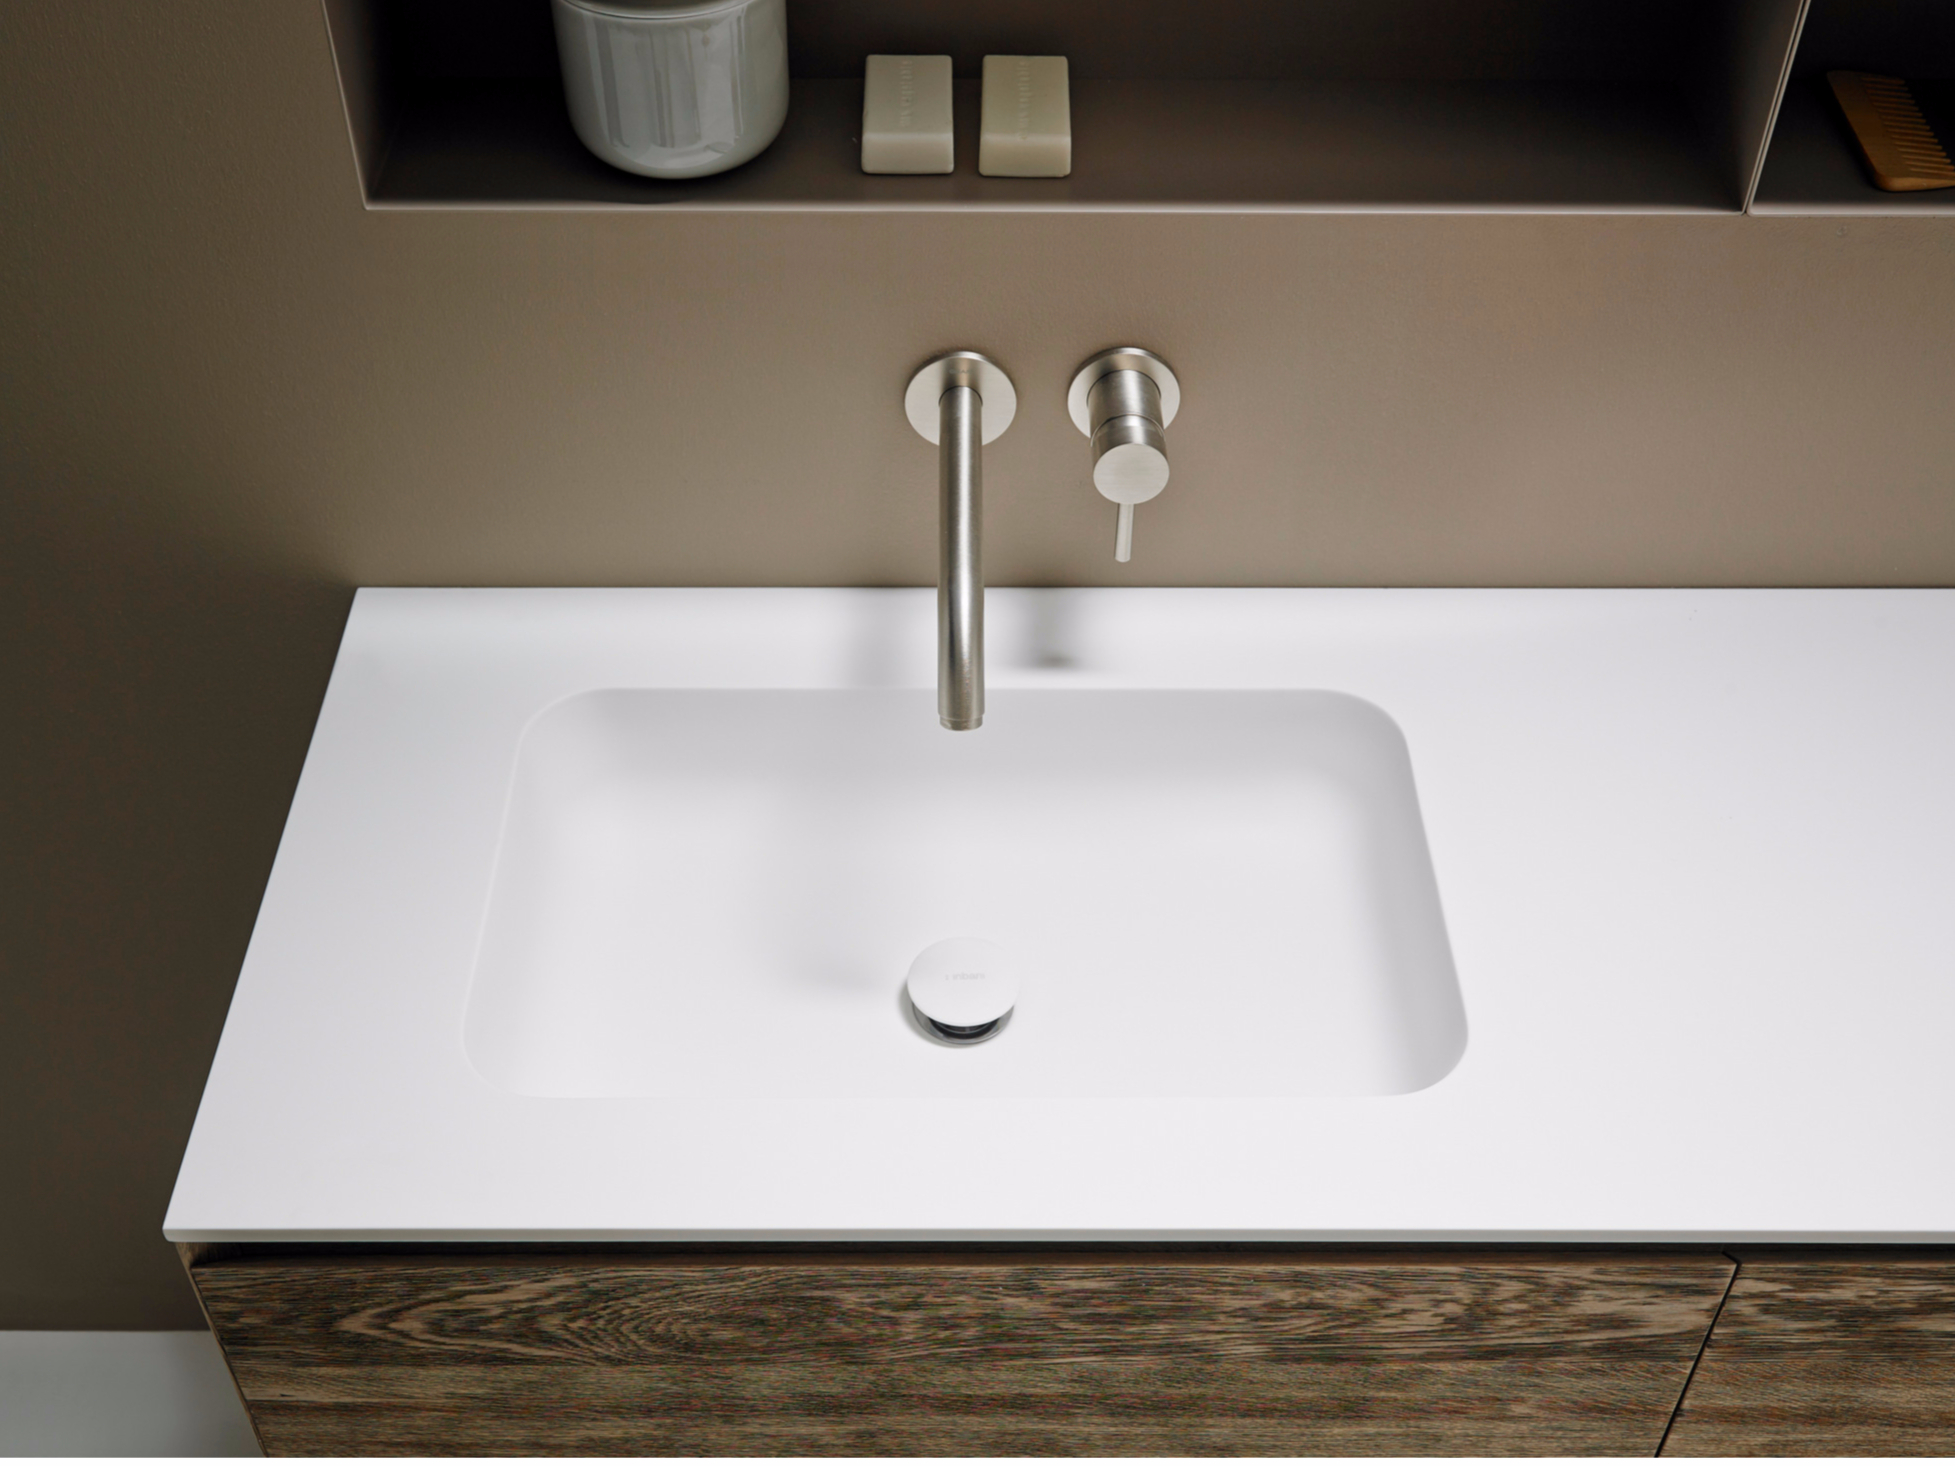 corian washbasin countertop quadro 55 by inbani. Black Bedroom Furniture Sets. Home Design Ideas